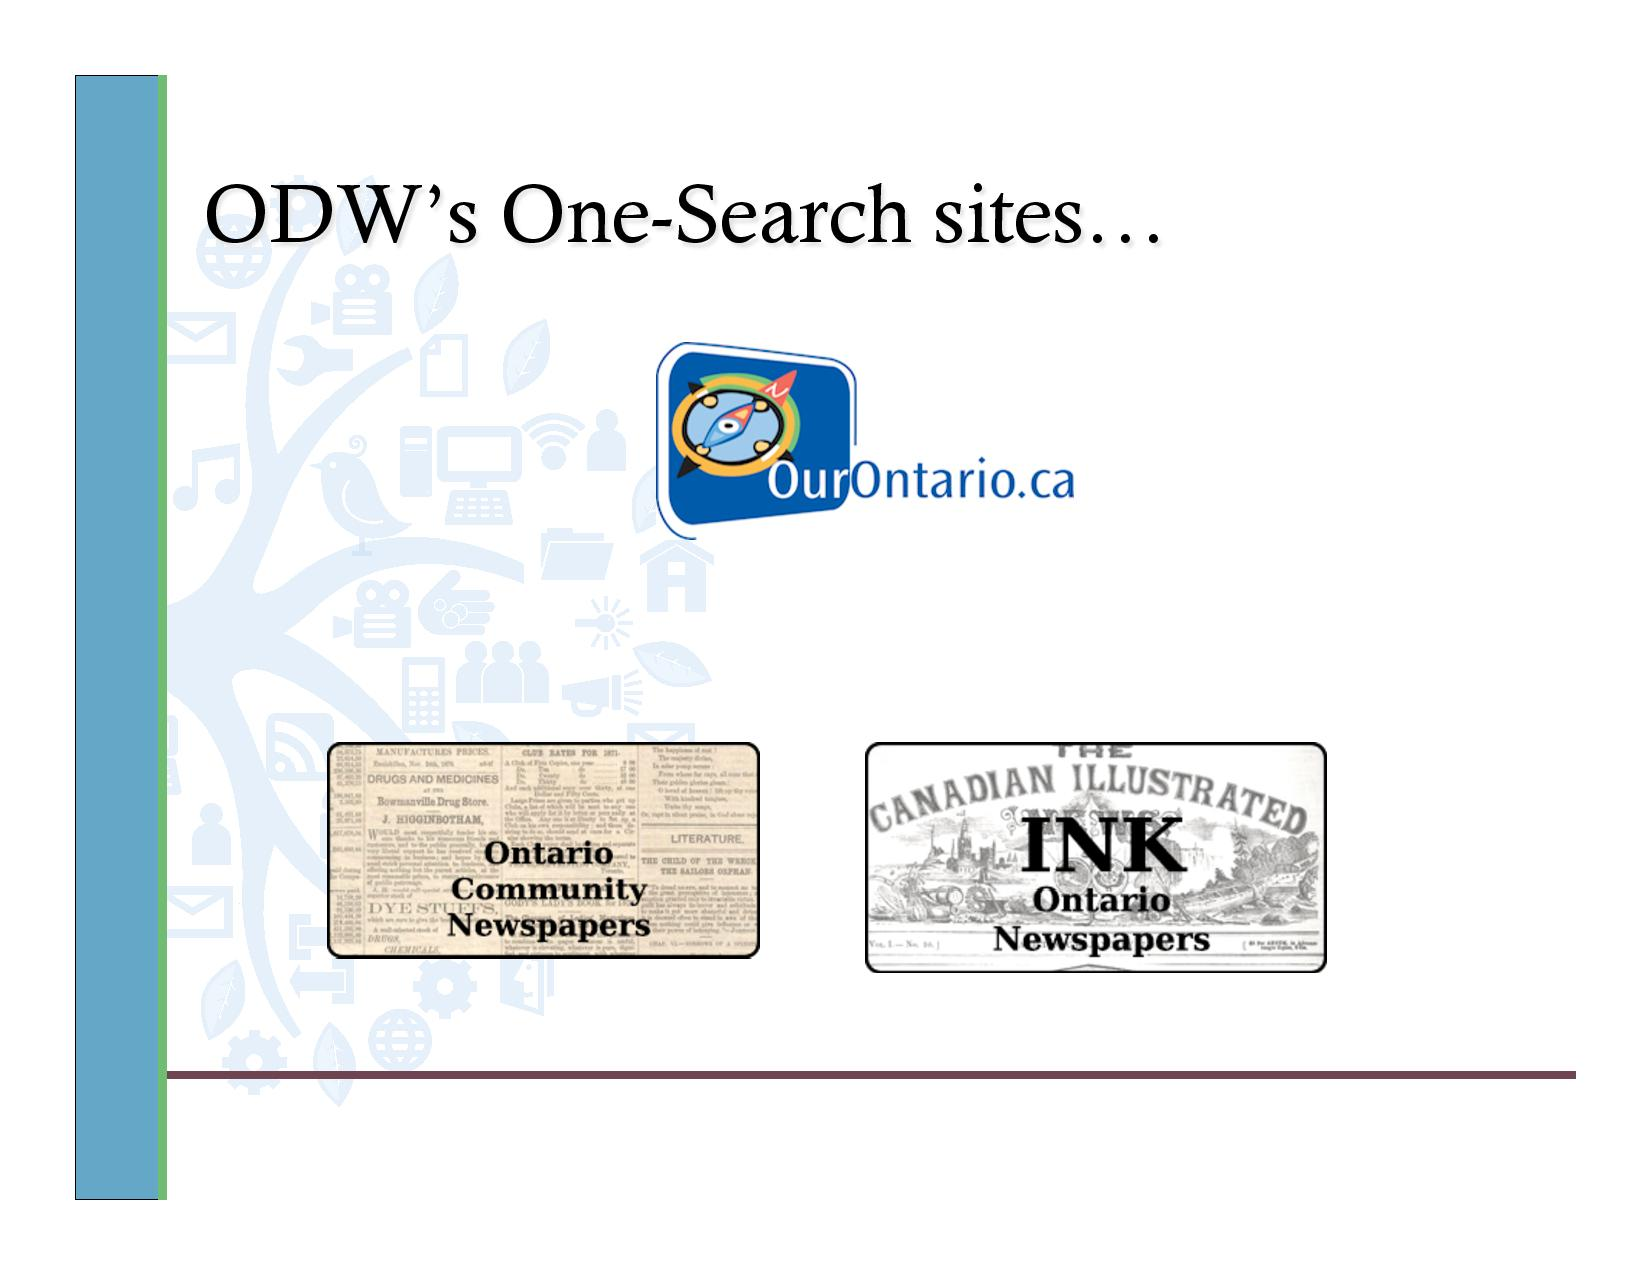 ODW's One search sites